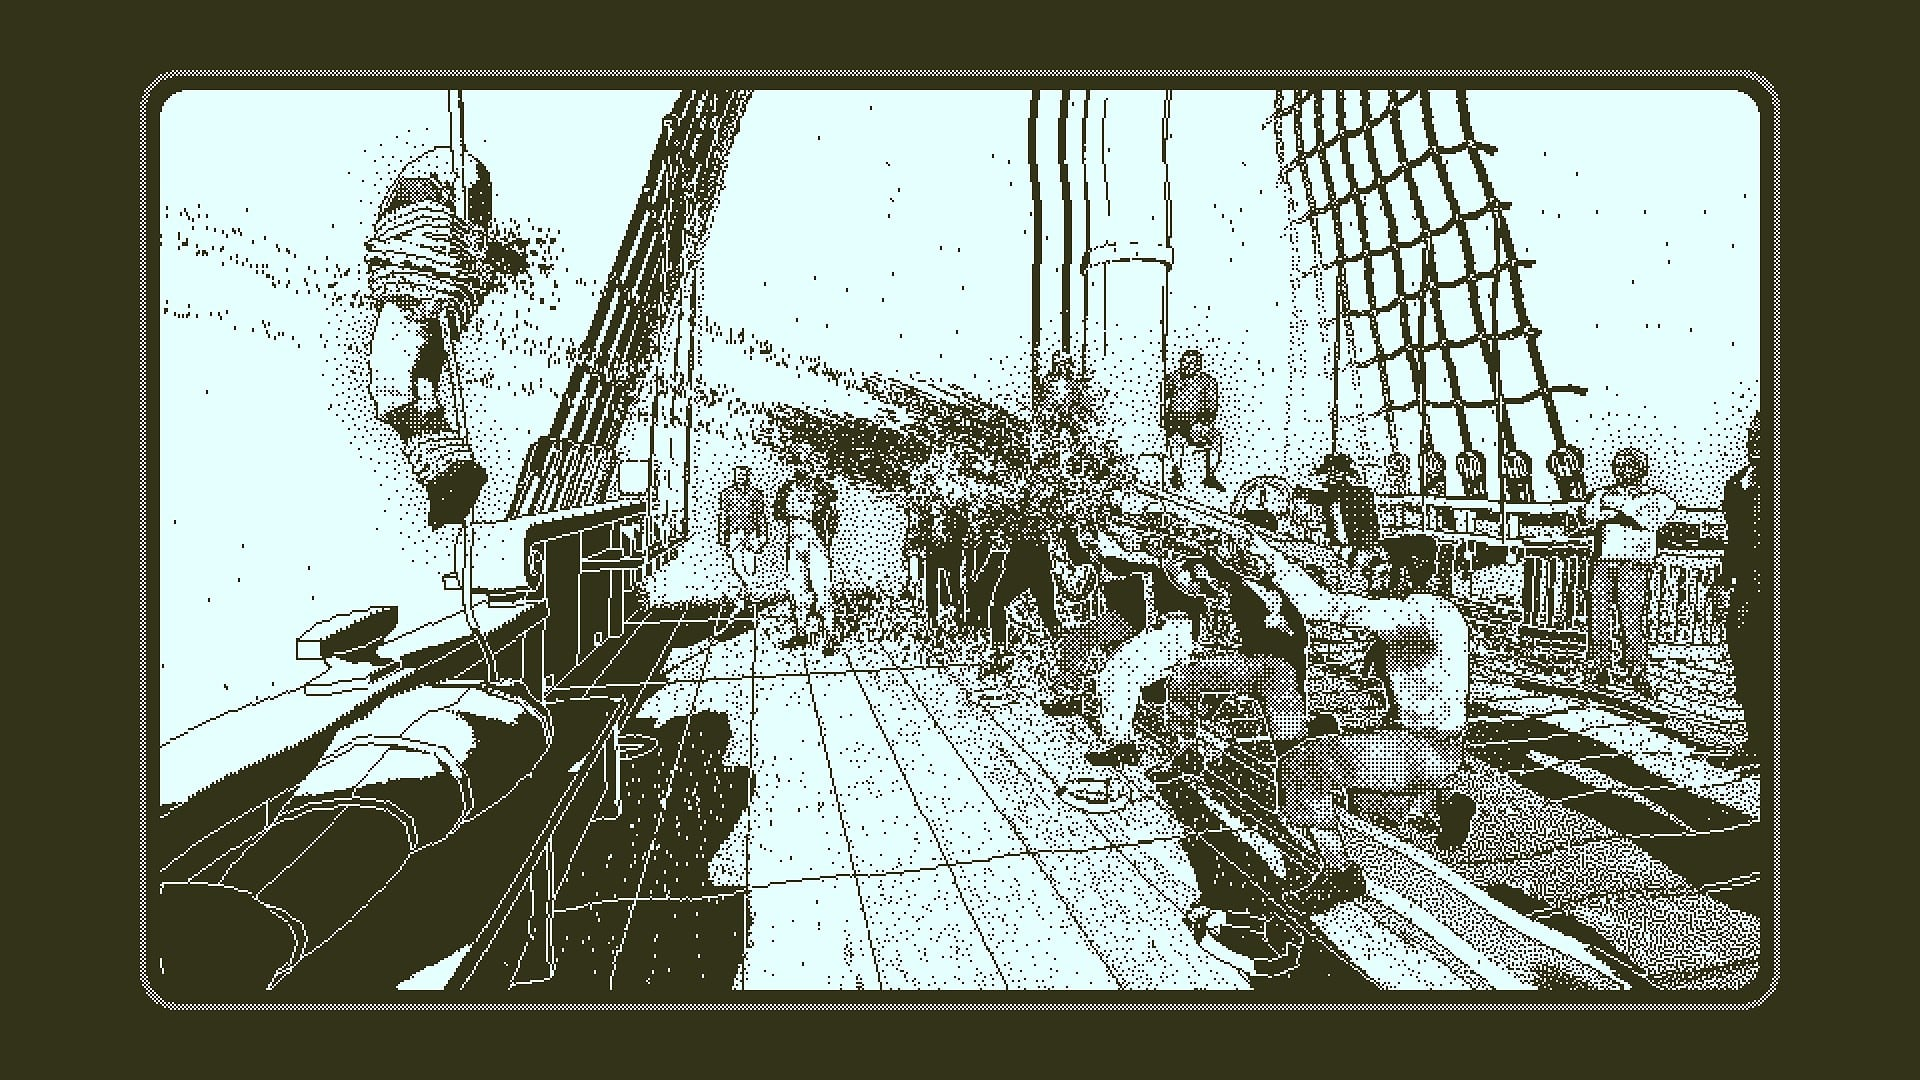 Return of the Obra Dinn 2